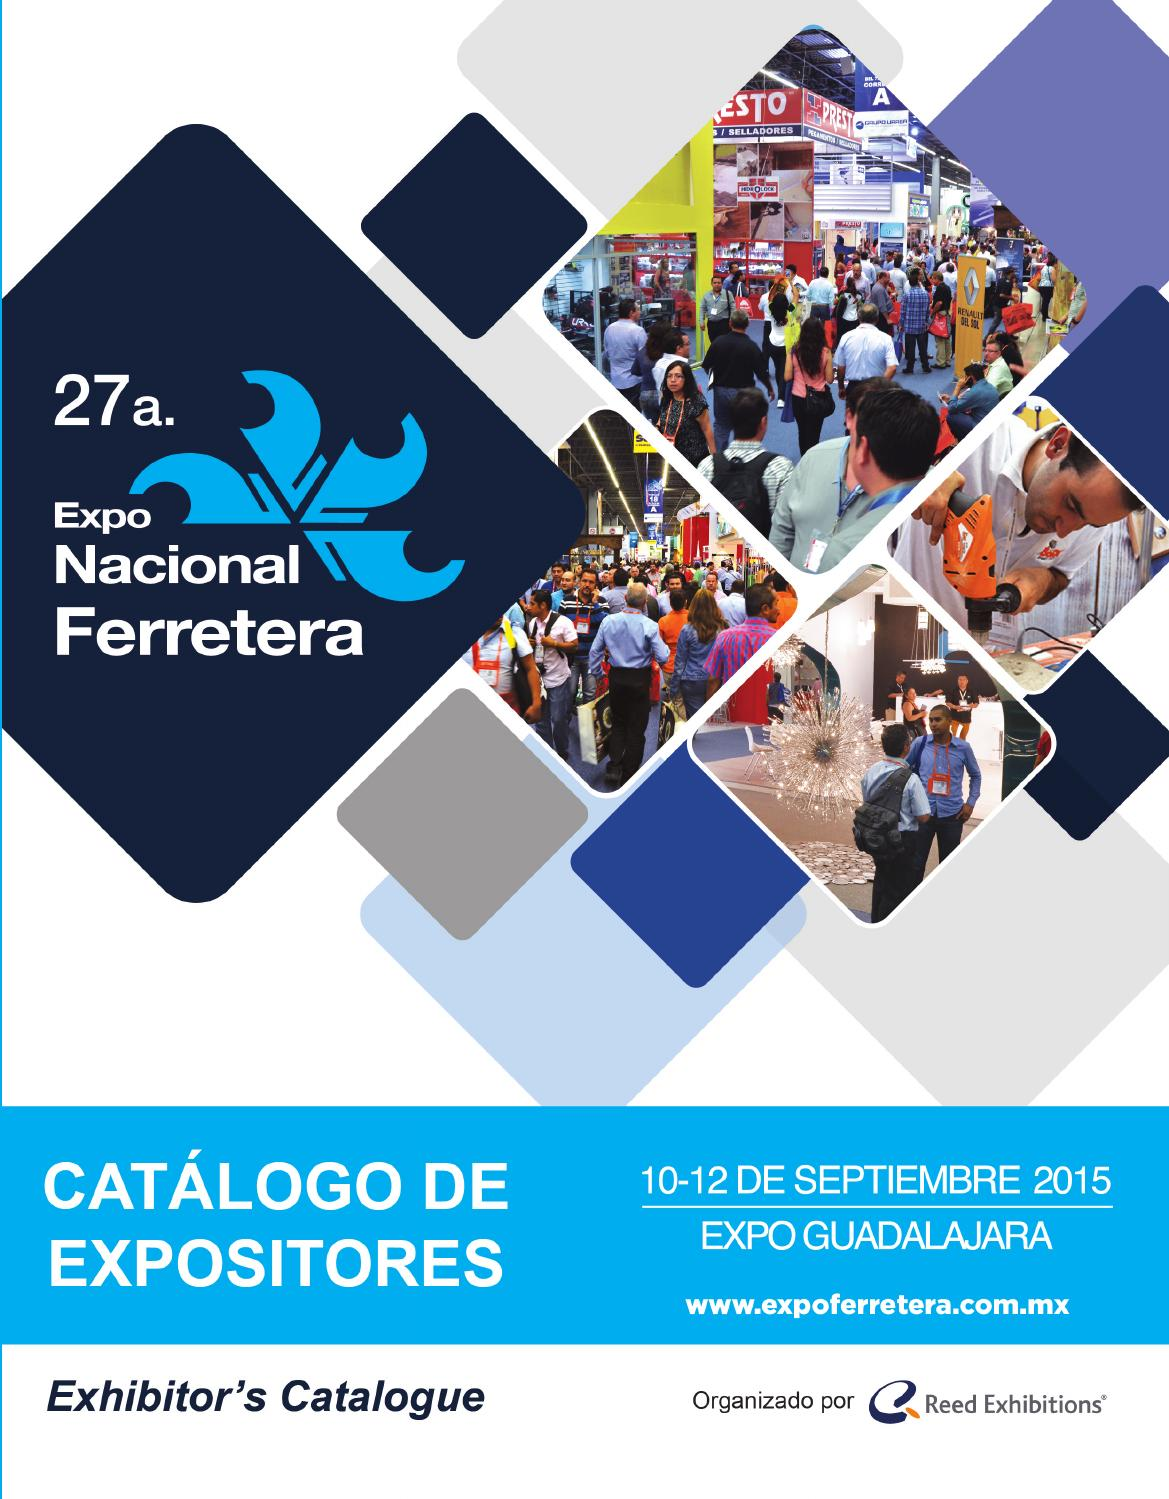 Cat Logo De Expositores 2015 Expo Nacional Ferretera By Reed  # Muebles Lira Gold